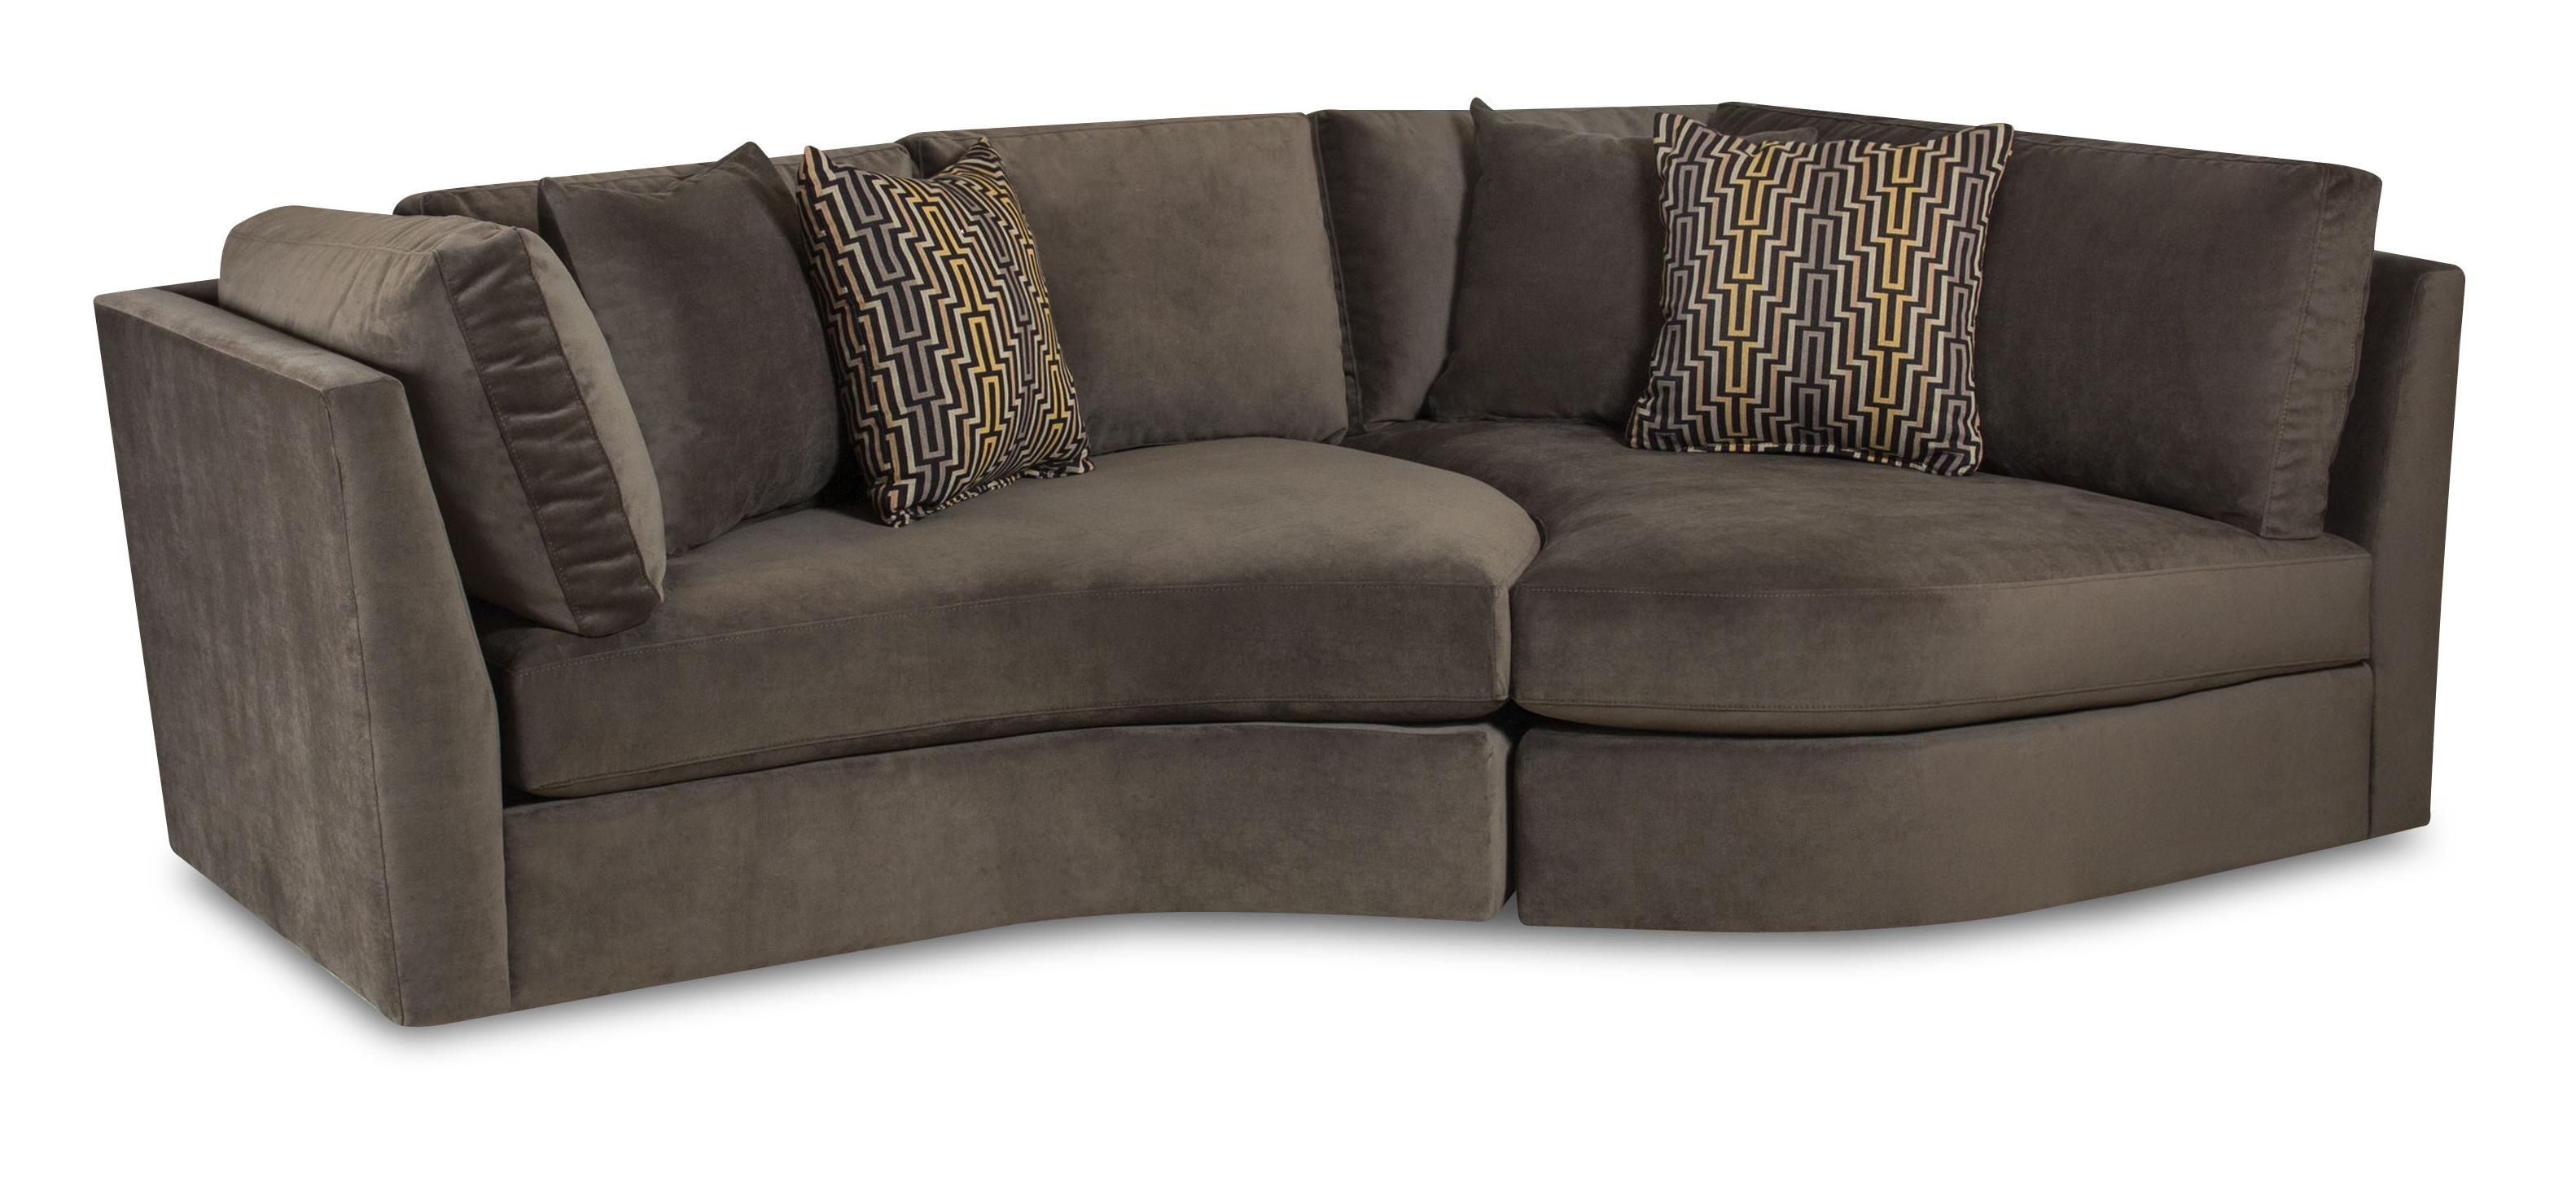 55JA Transitional Love Chair by Bauhaus Sofa, Sectional